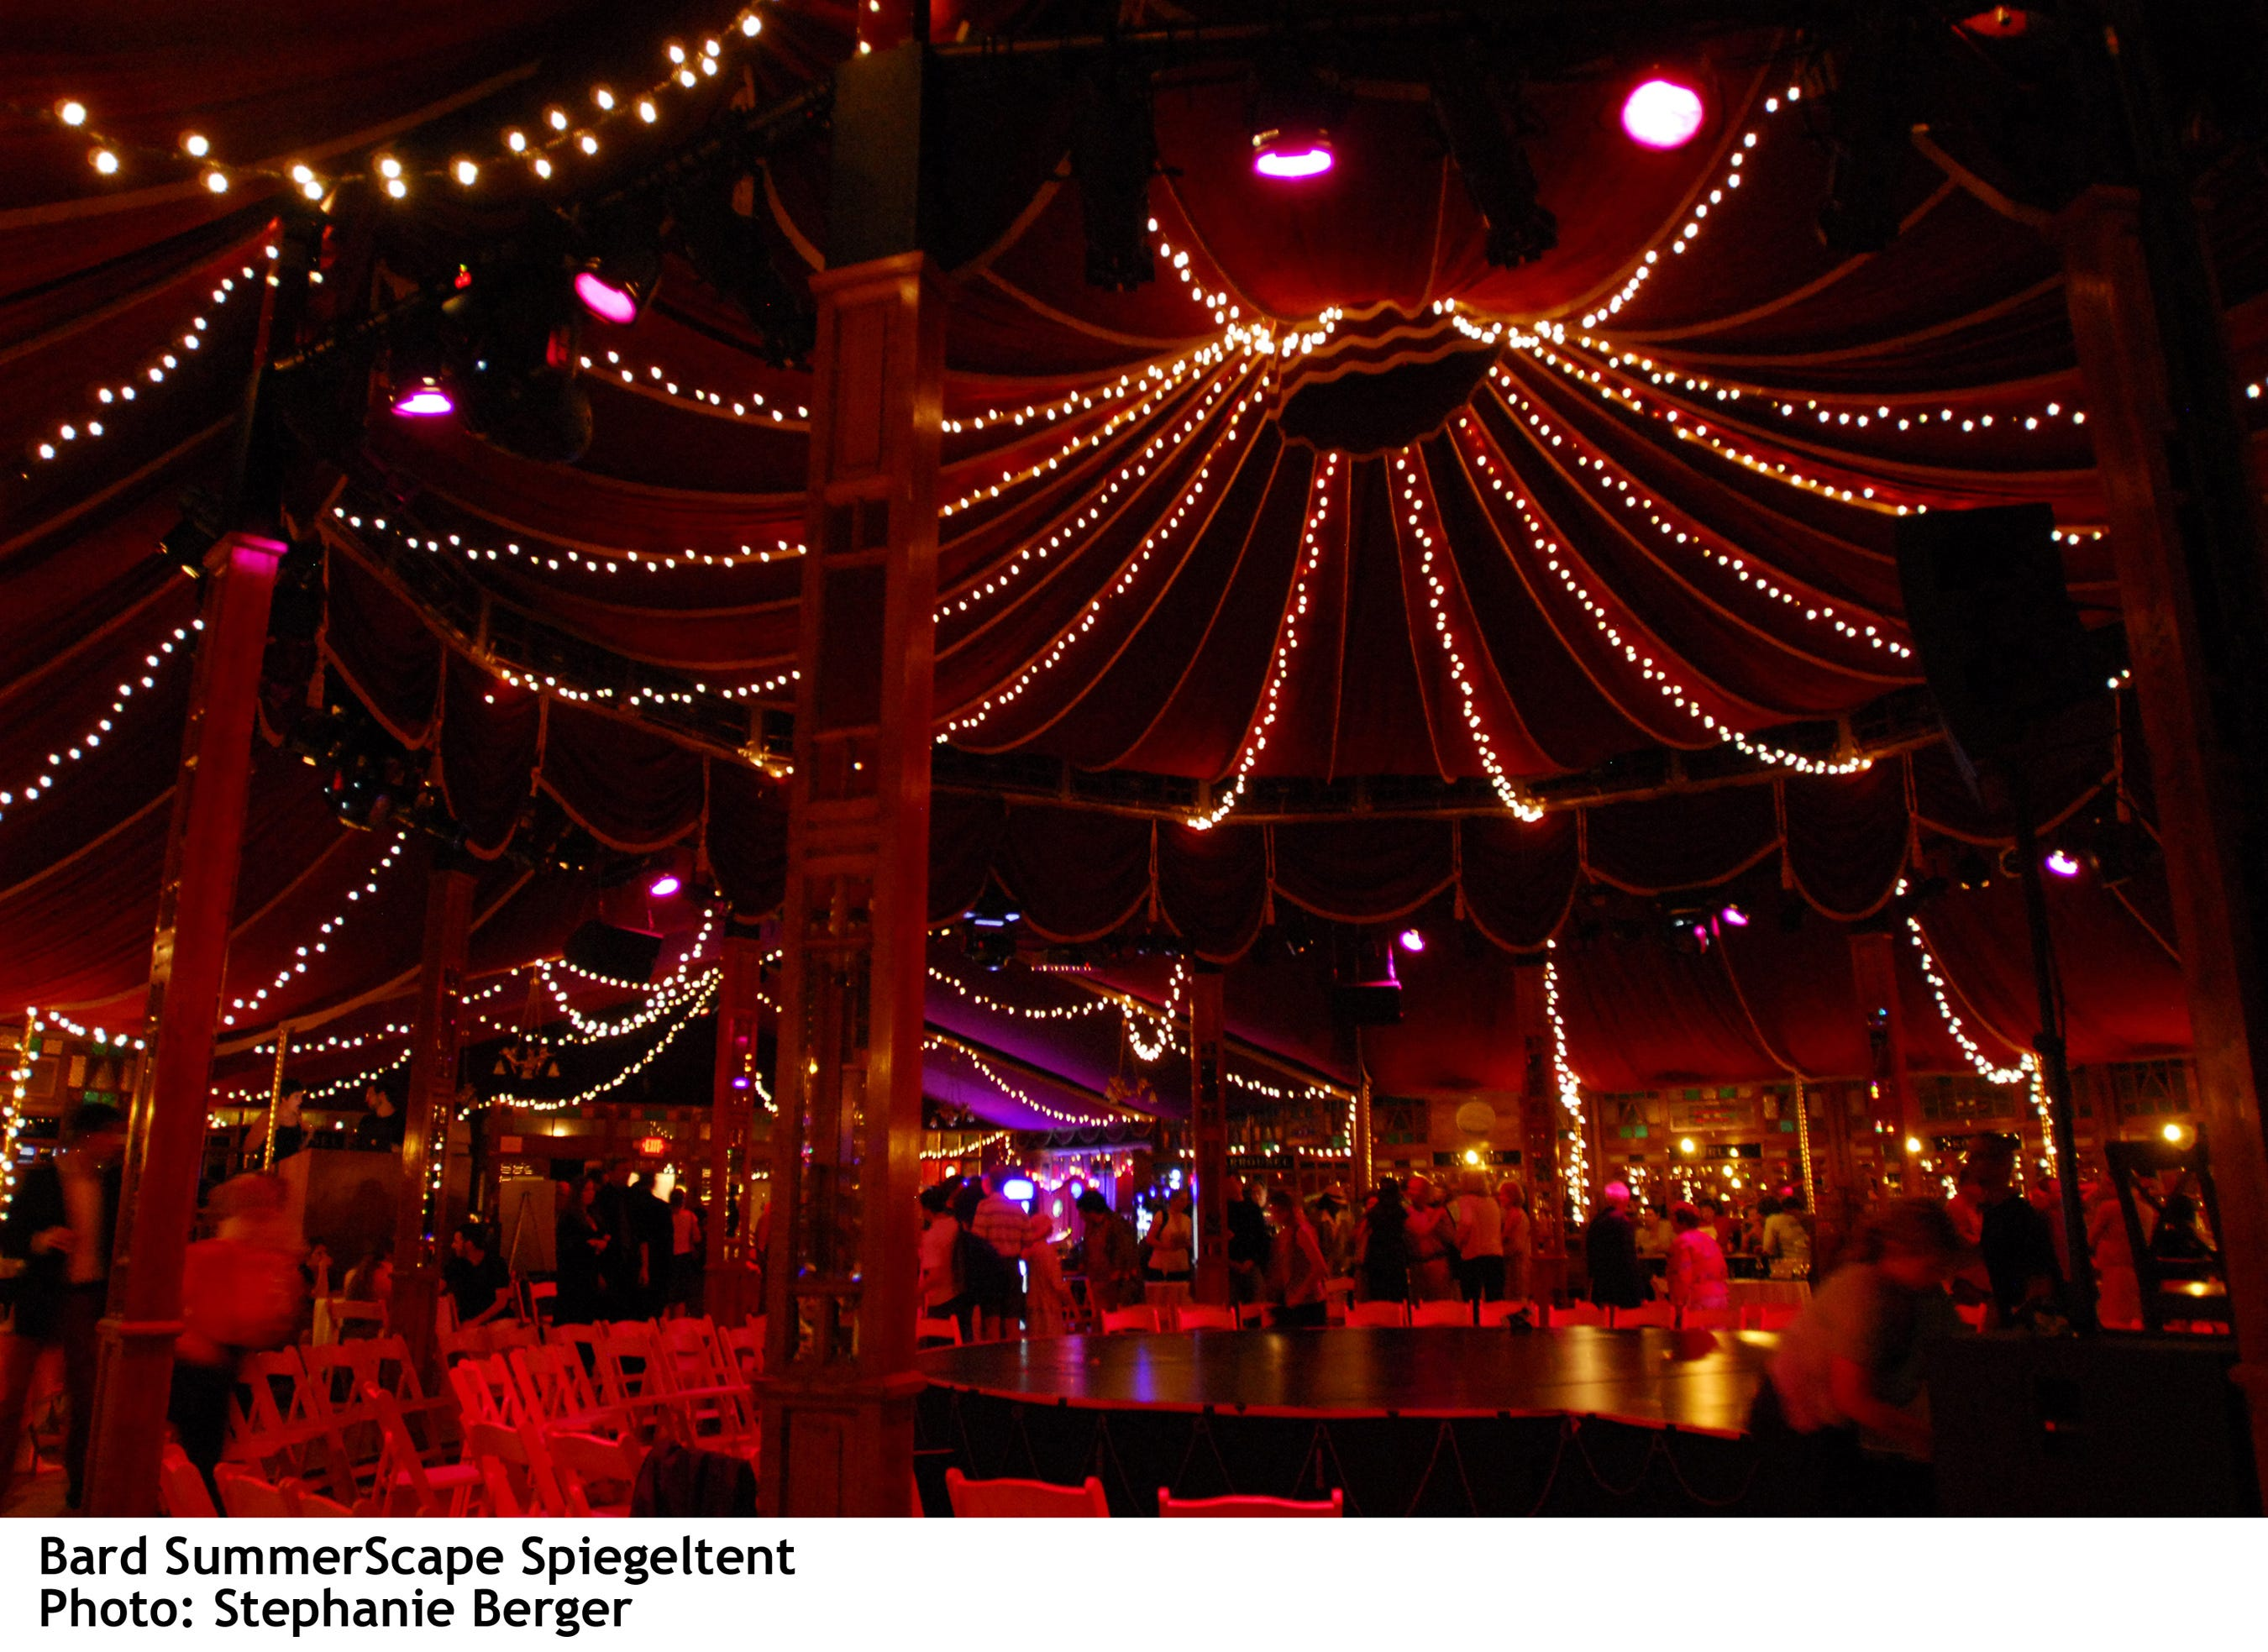 & A sizzling summer at SummerScape the Spiegeltent